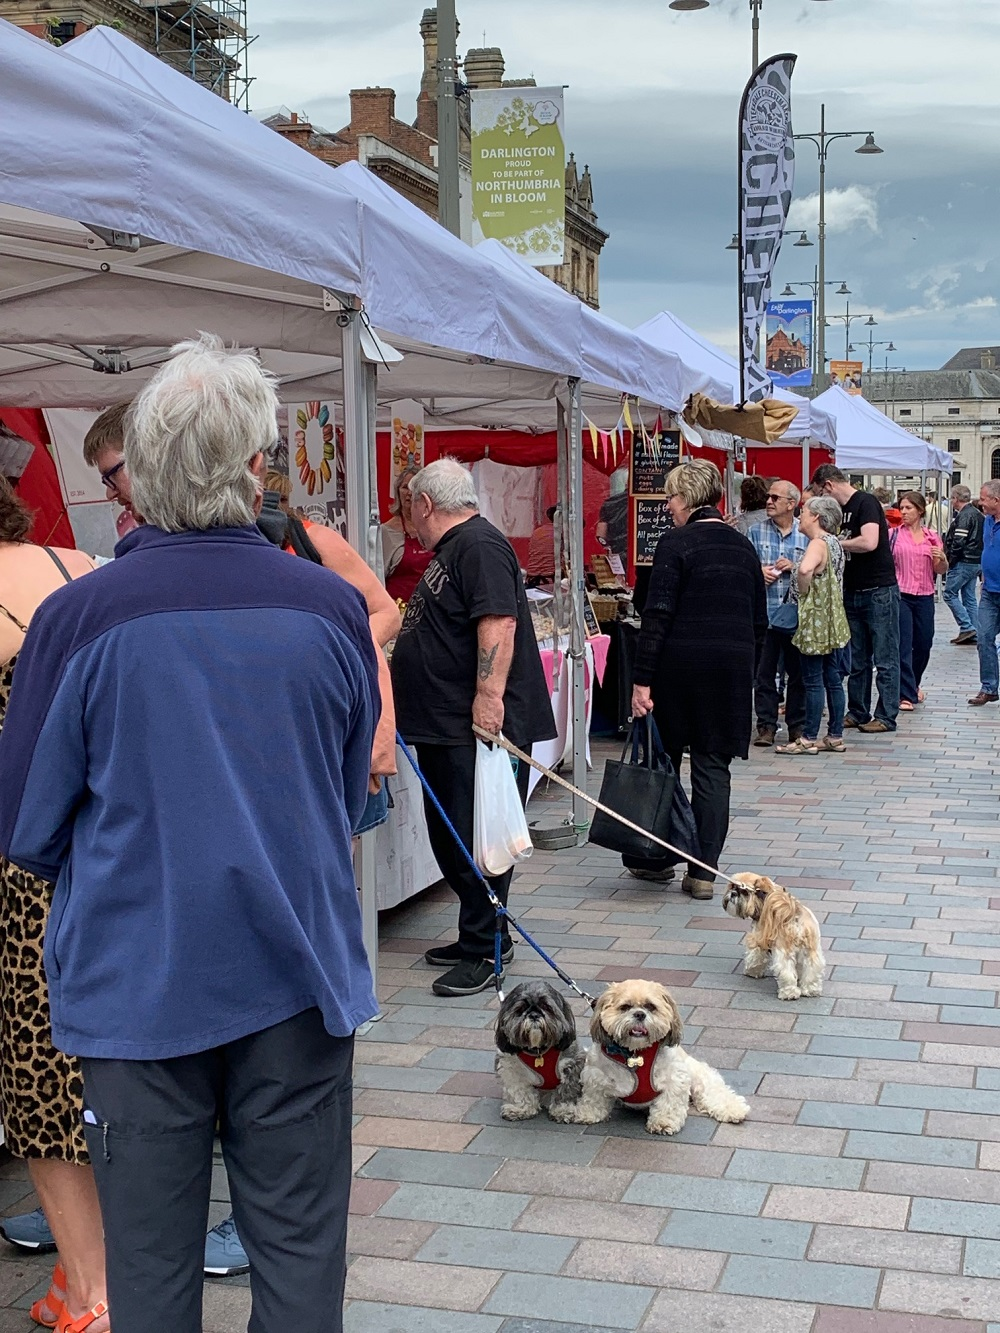 Darlington Market looks forward to re-opening the full market and the Outdoor Market will return to the Square